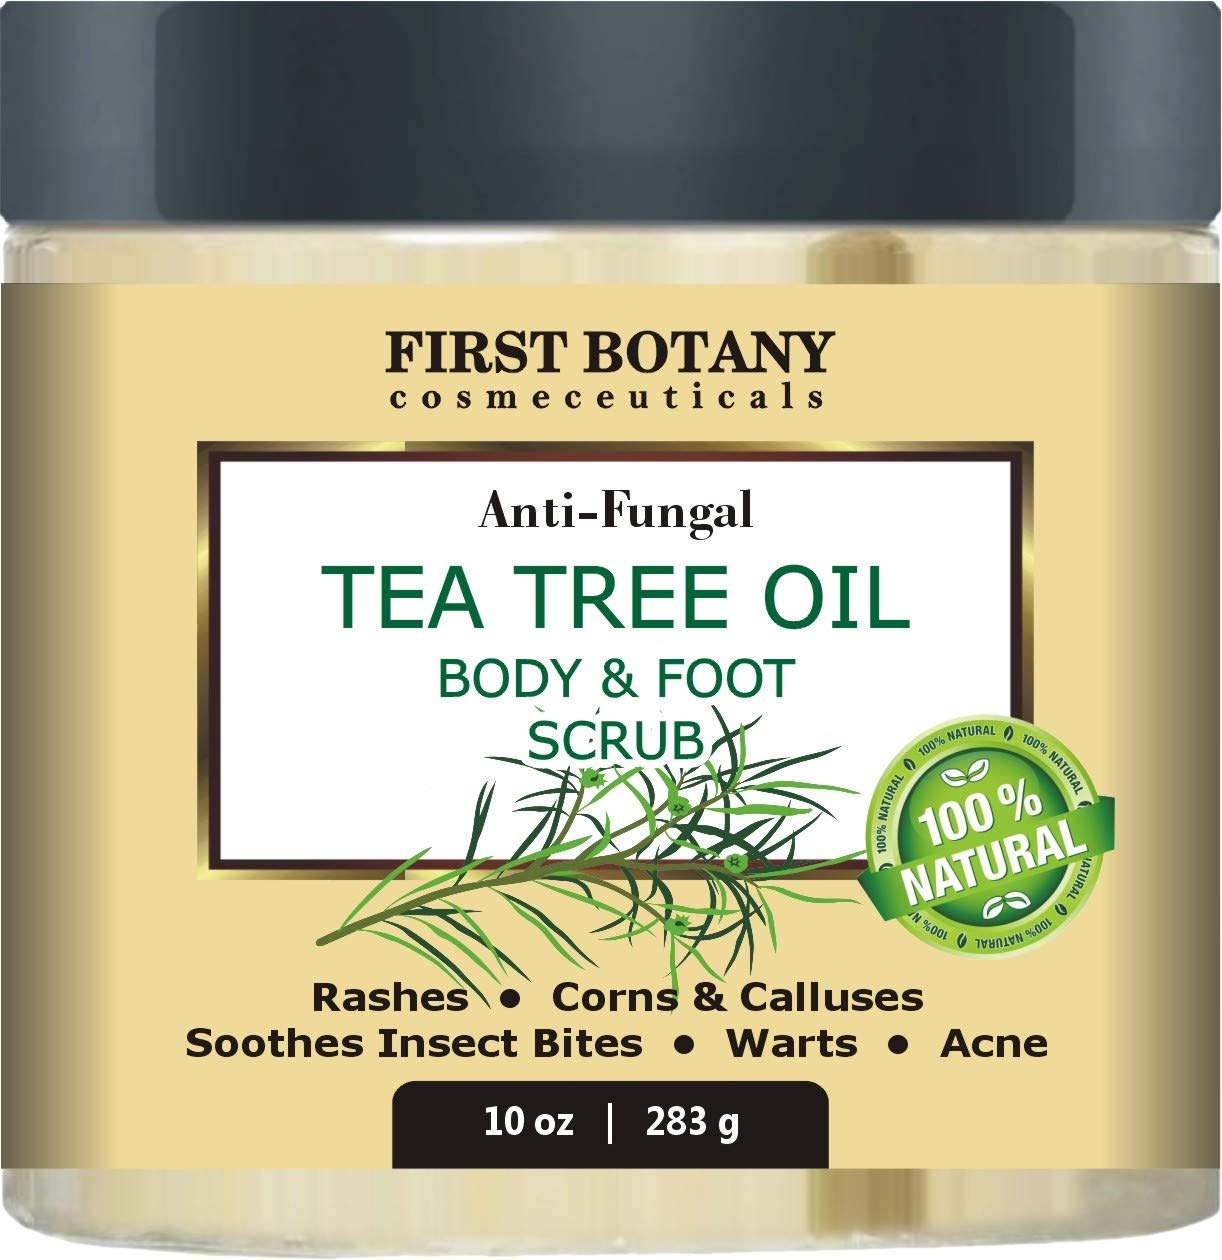 100% Natural Anti Fungal Tea Tree Oil Body & Foot Scrub with Dead Sea Salt - Best for Acne, Dandruff and Warts, Helps with Corns, Calluses, Athlete foot, Jock Itch & Body Odor by First Botany Cosmeceuticals